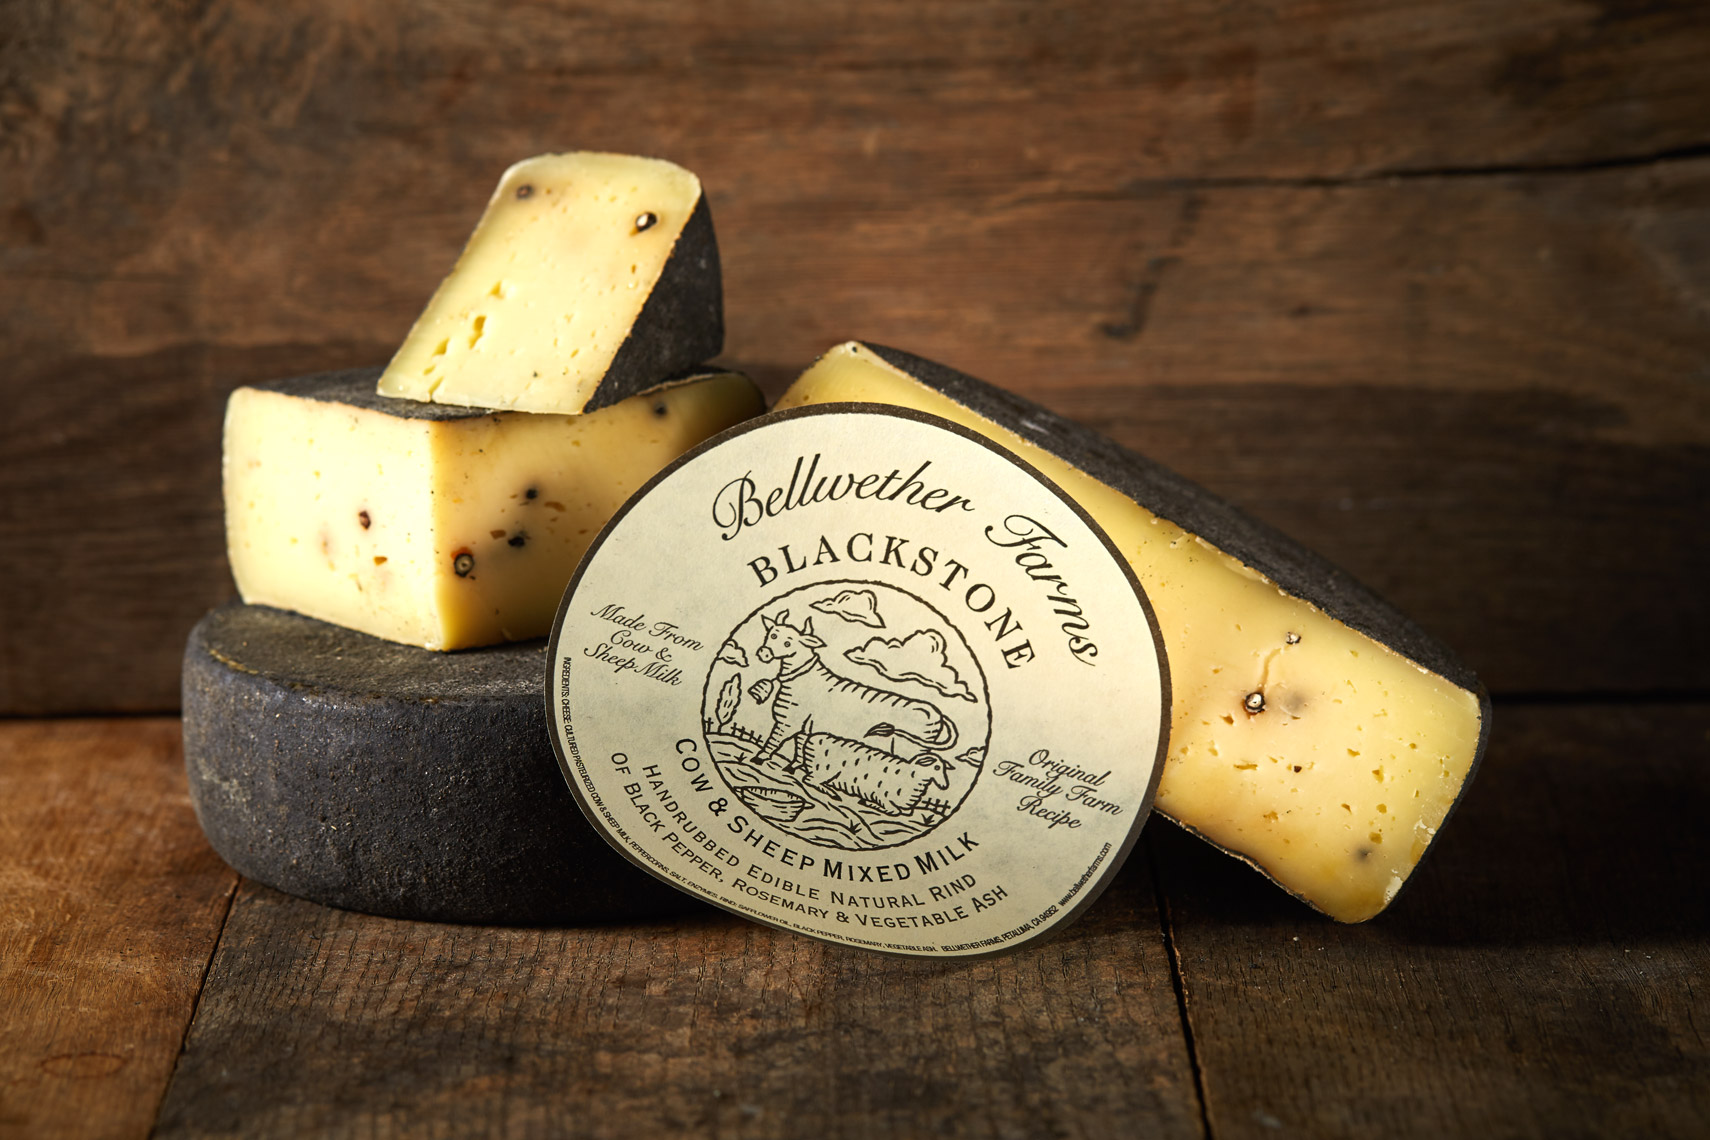 AlanCampbellPhotography, Blackstone Bellwether Farms Cheese